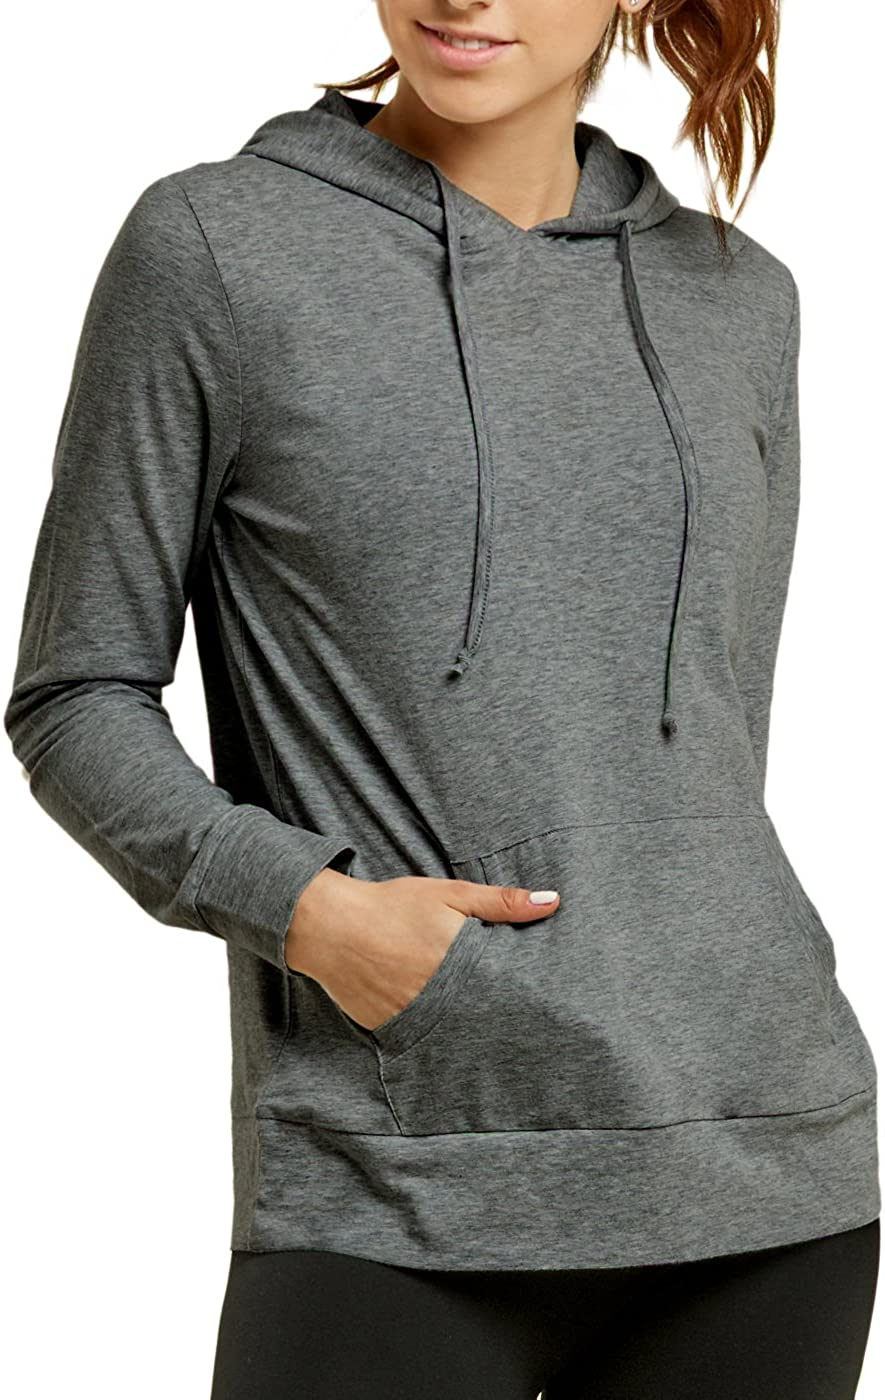 Sofra Womens Thin Cotton Pullover Hoodie Sweater